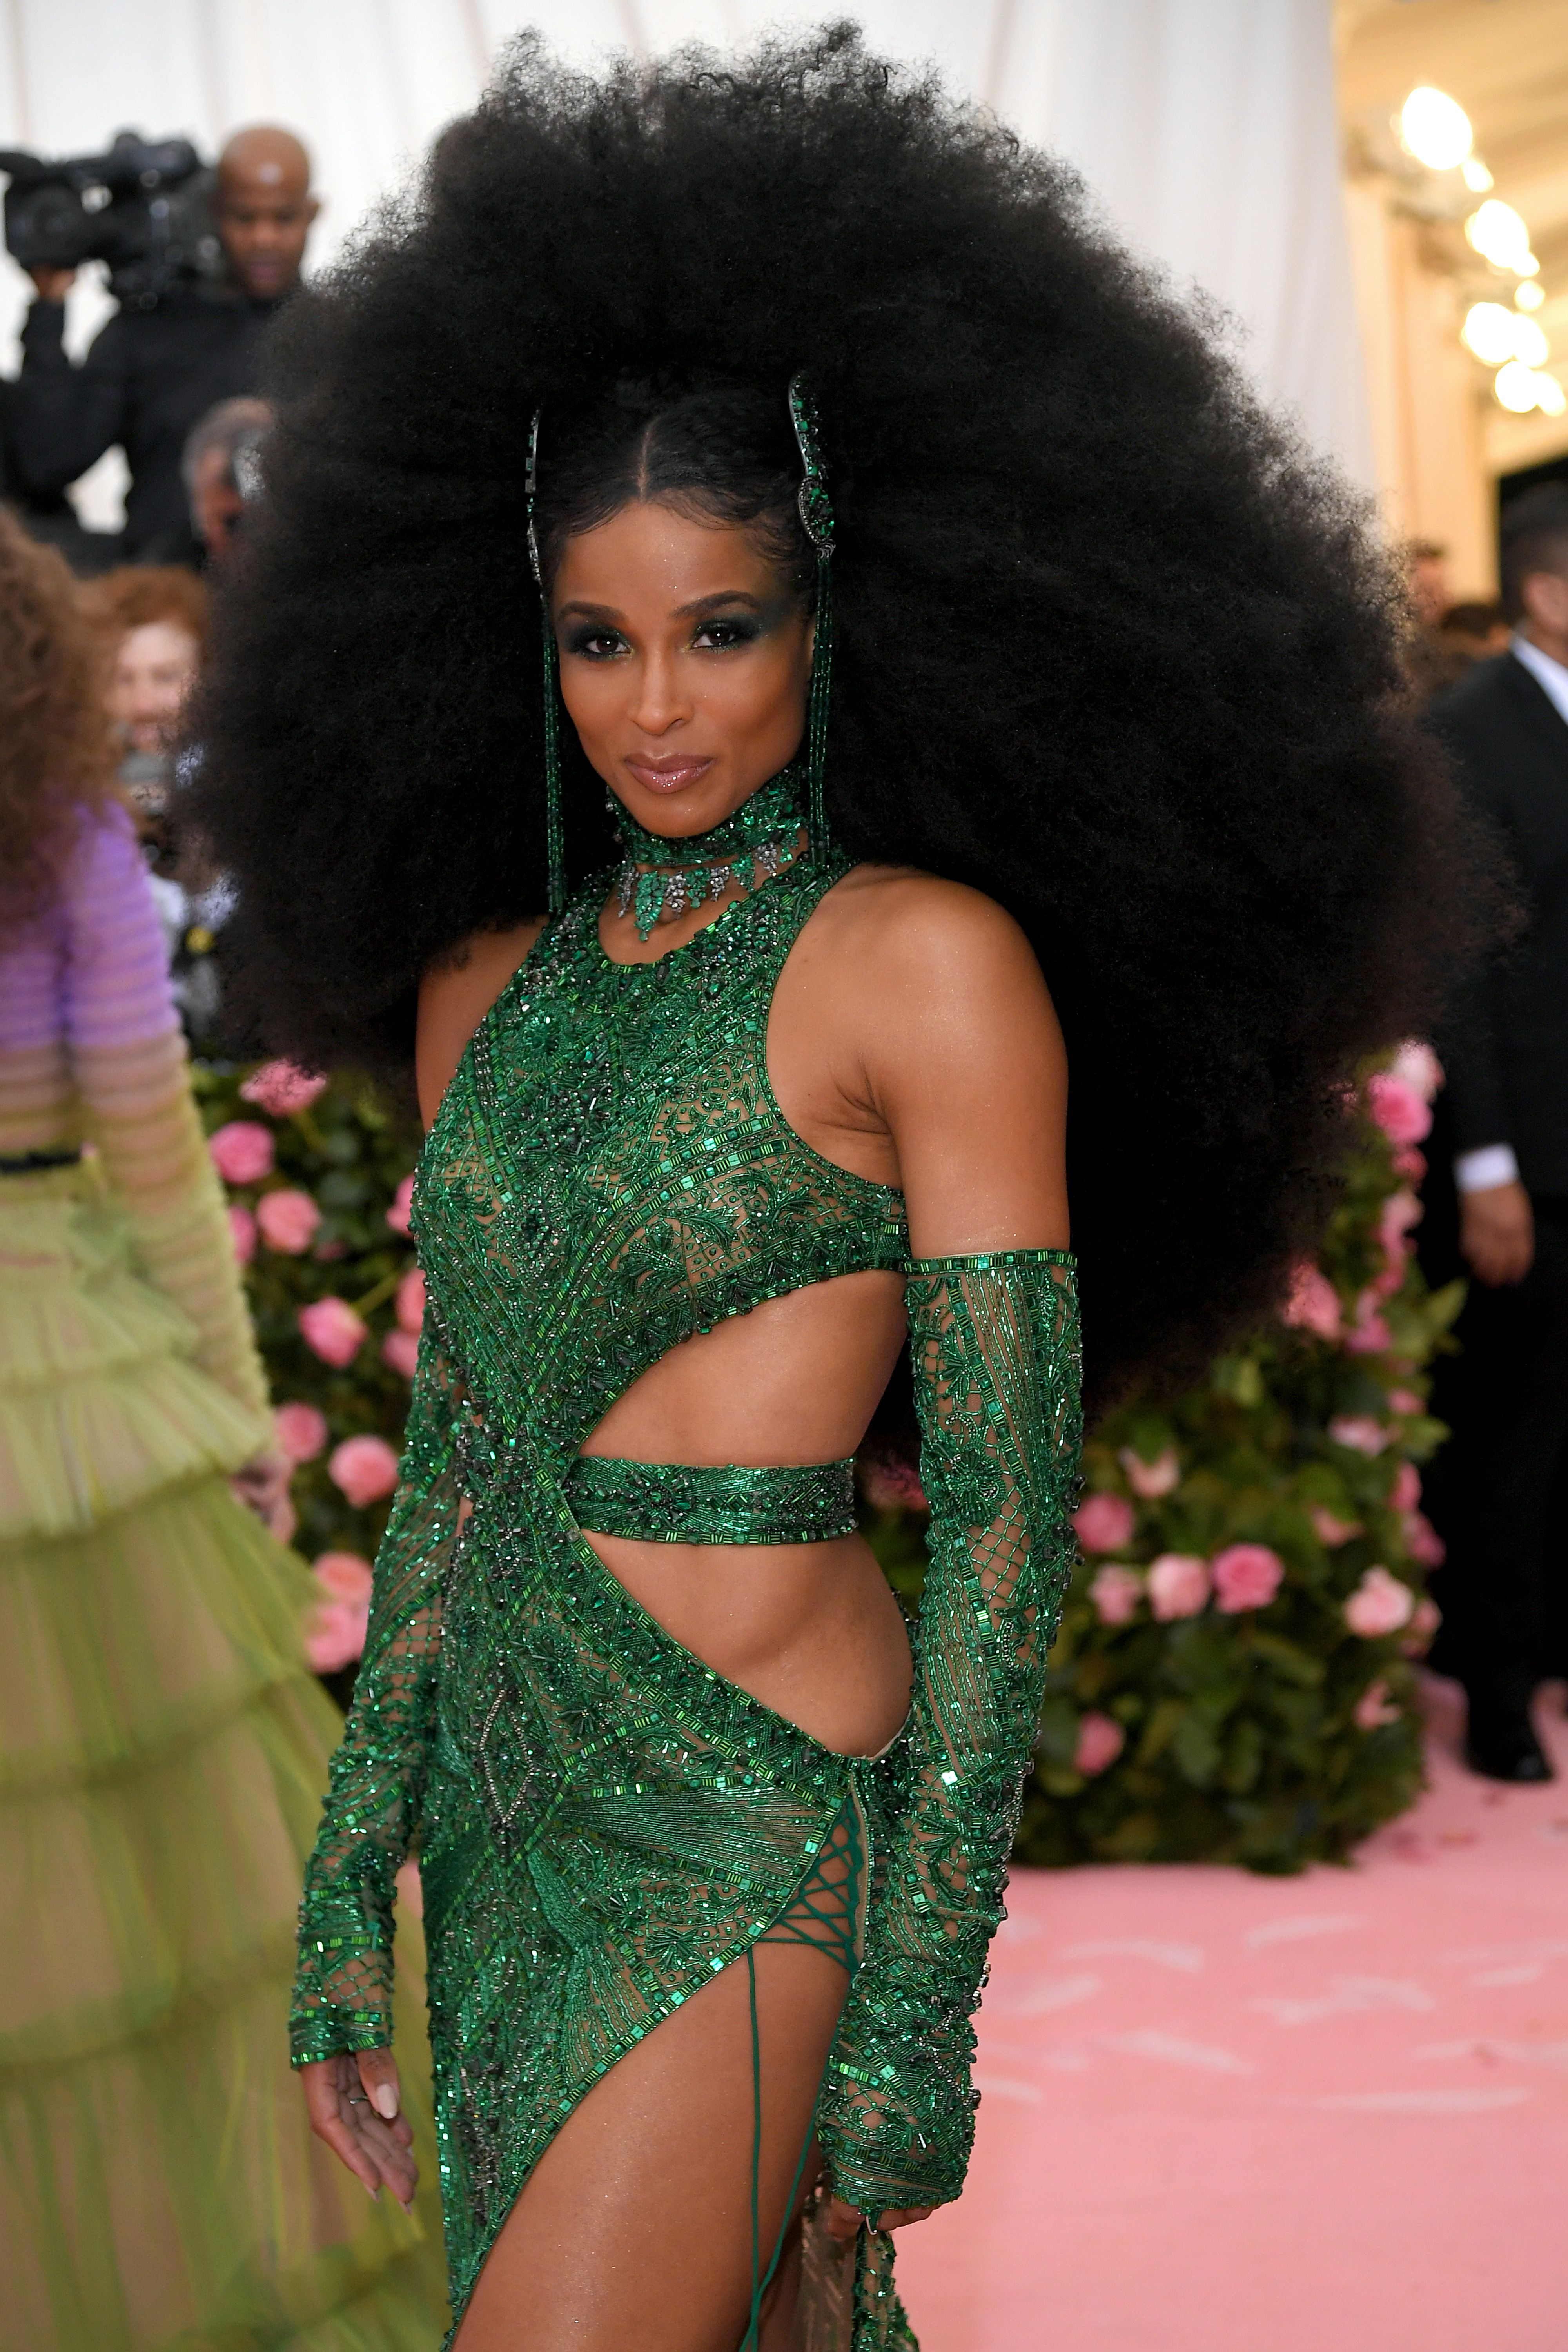 Ciara Ciara wore an extra, extra big afro with emerald tasseled hair accessories creating a center part. Her eye makeup was also emerald, applied deliberately imperfectly across her lids all the way to her temples.